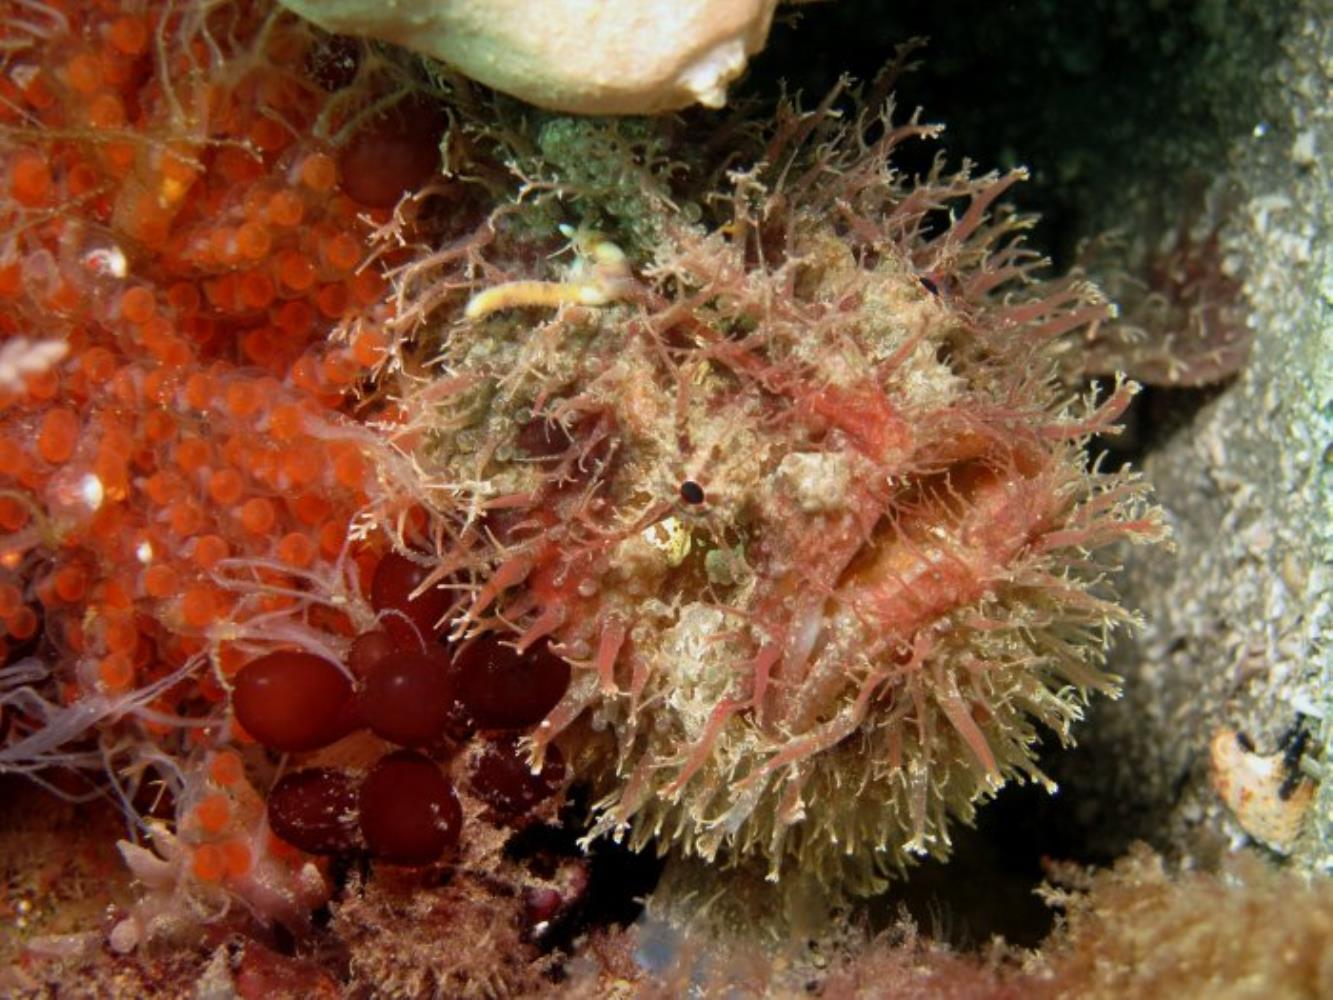 Tasseled Frogfish